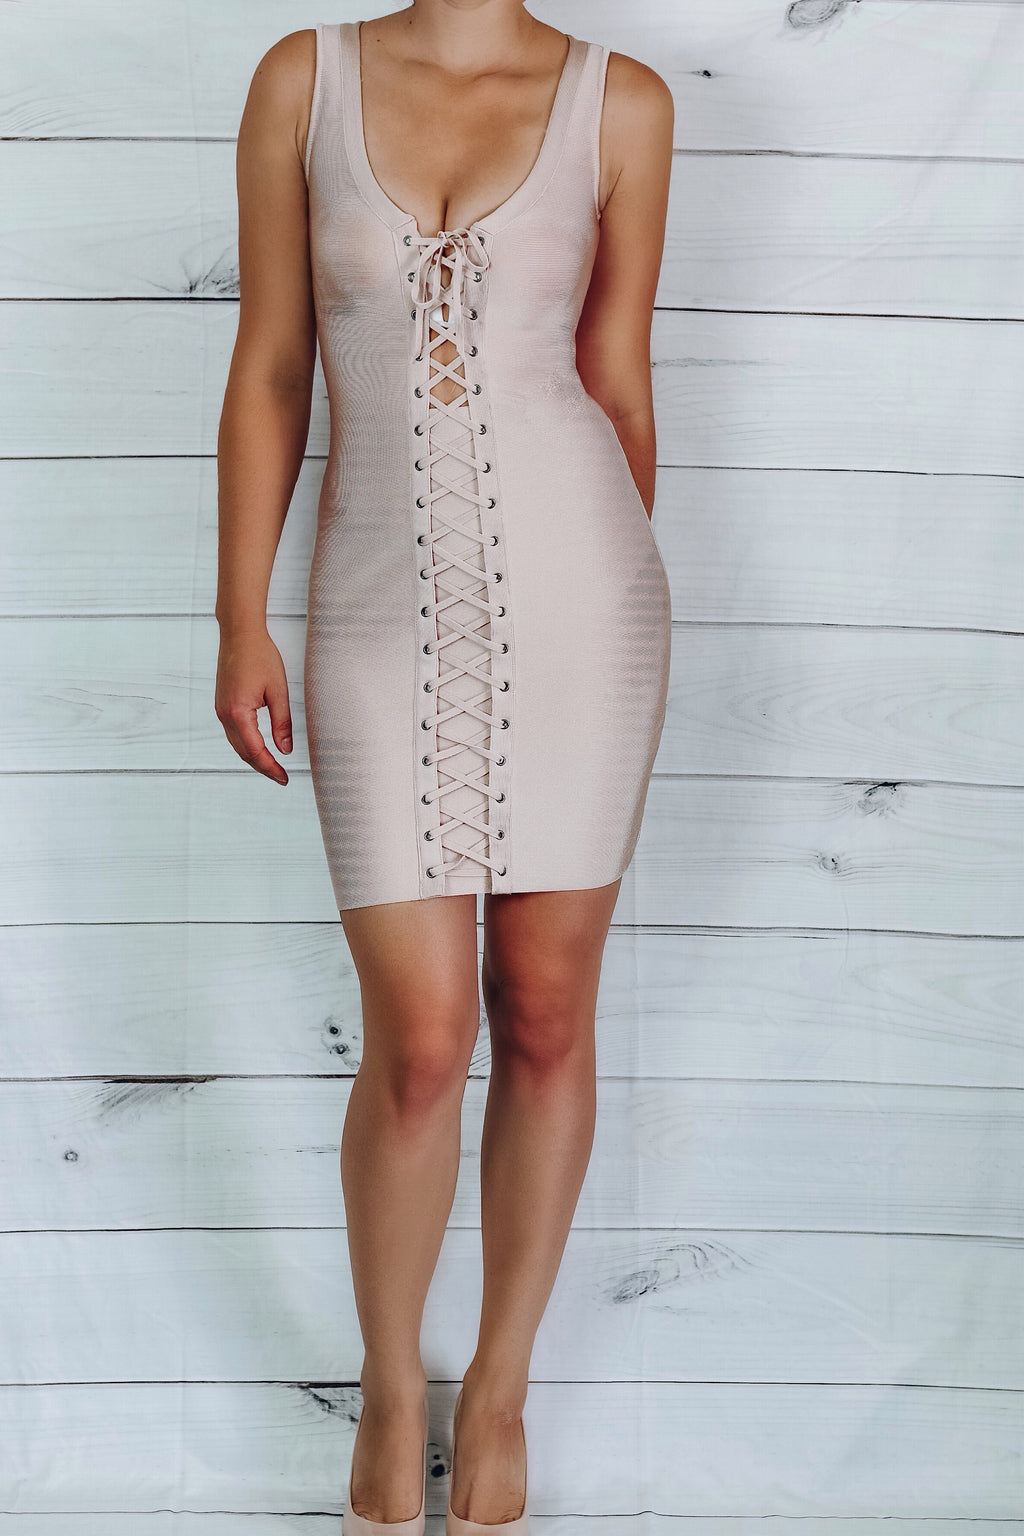 Star Lace-Up Bandage Dress - Apricot Pink